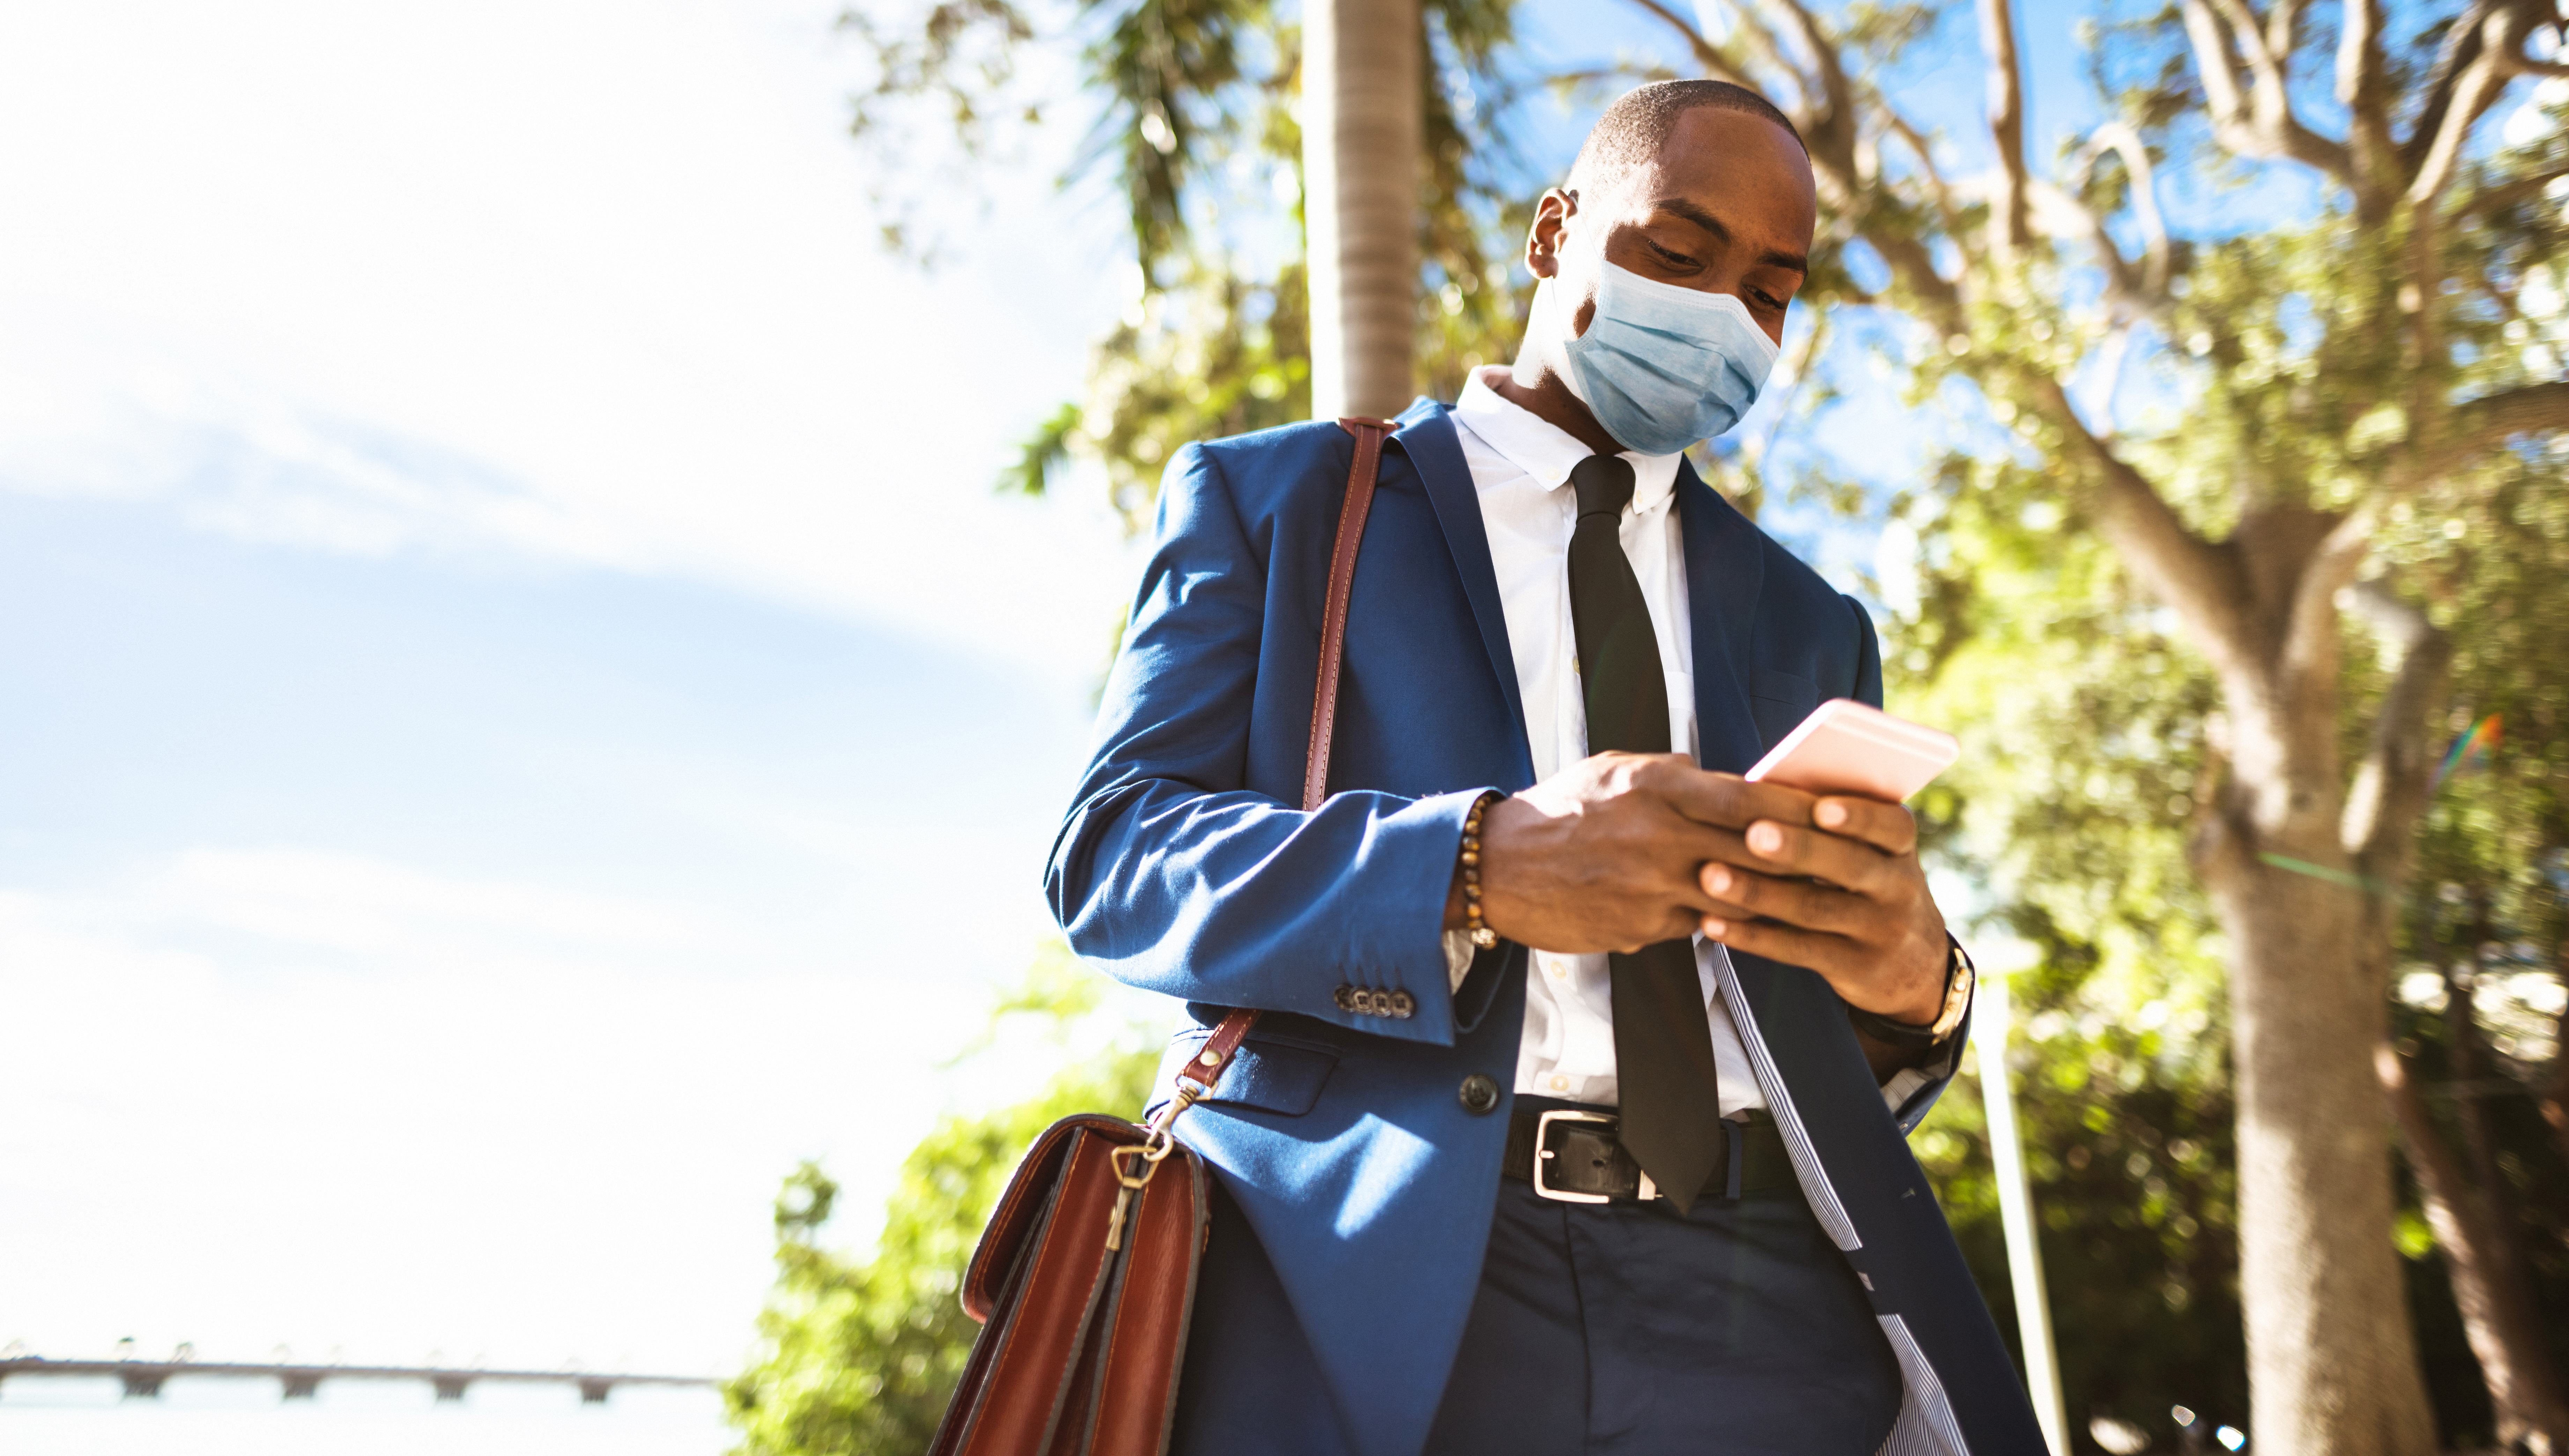 COVID-19: How to Reopen Your Office During the Pandemic